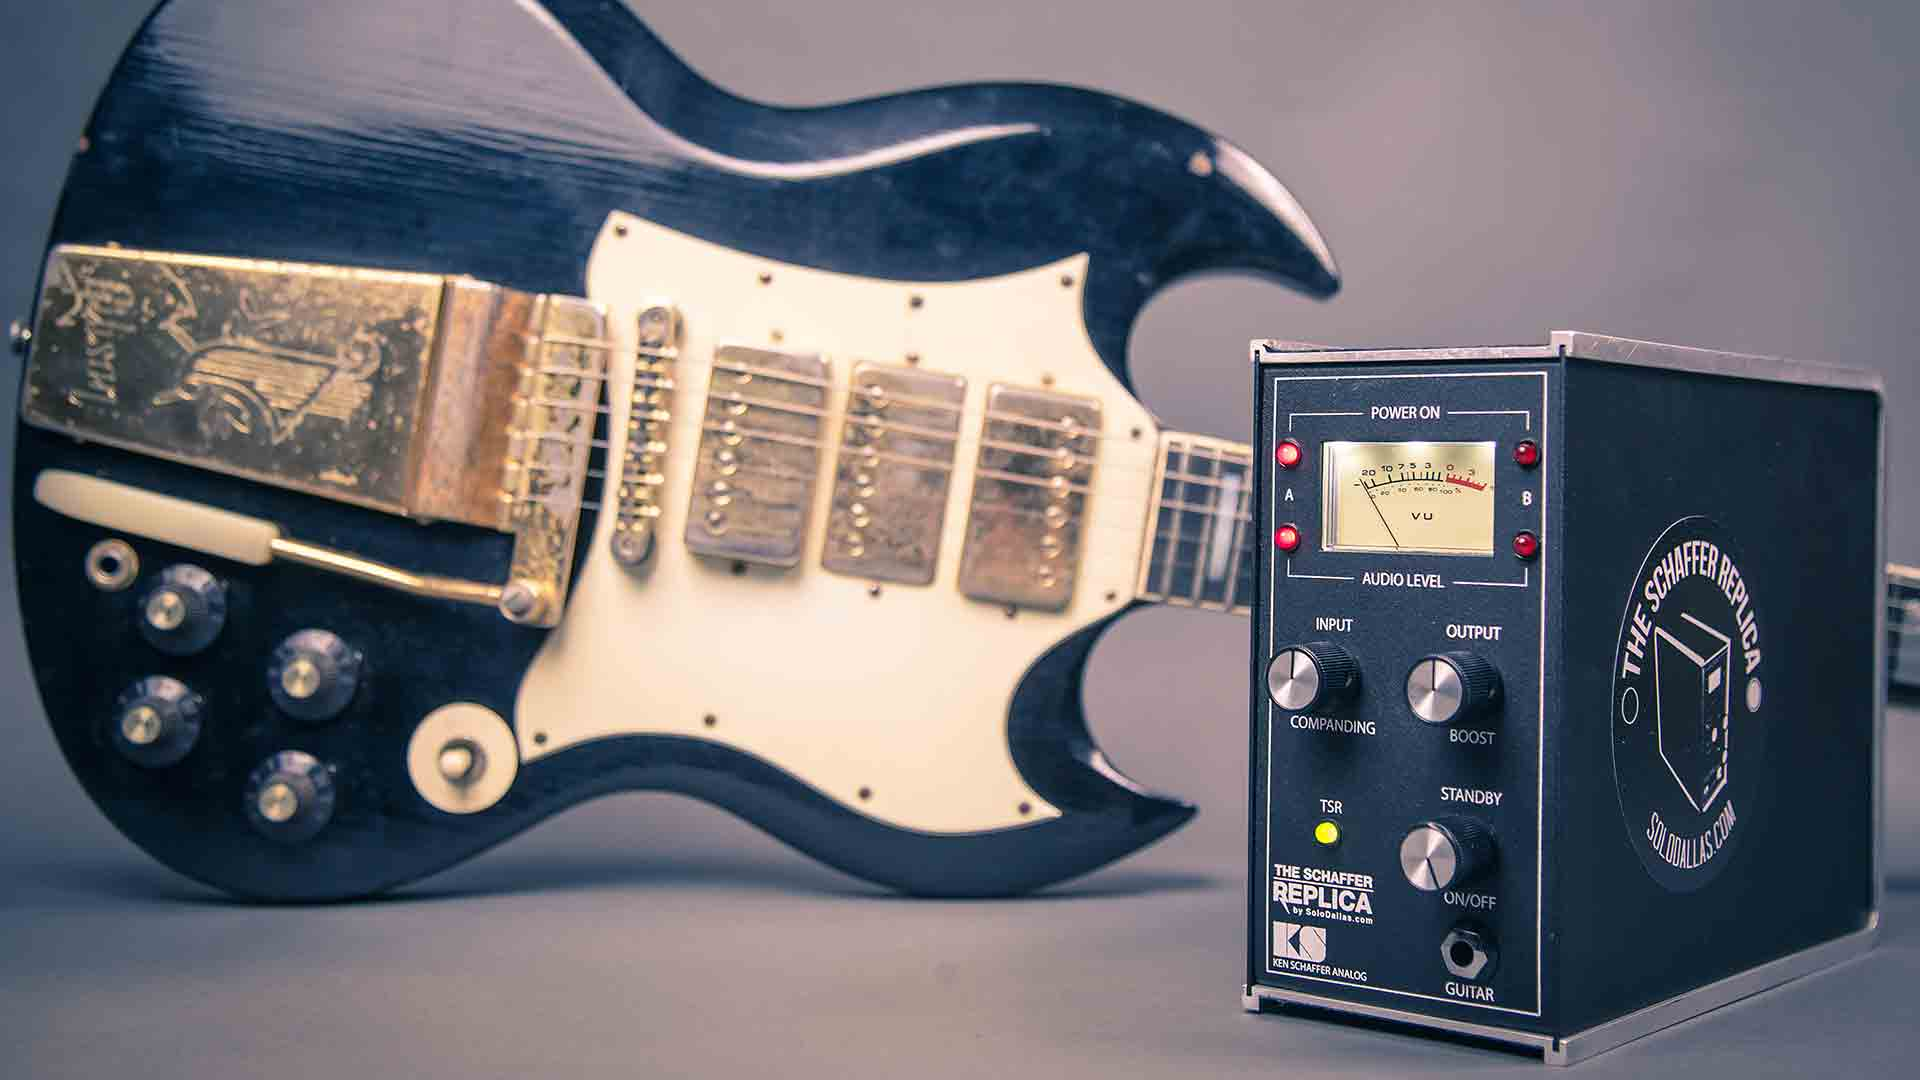 Angus Young Sg Wiring Diagram Electricity Basics Sl 3000 Ul Solodallas Com The Schaffer Replica By Rh Gibson Kit